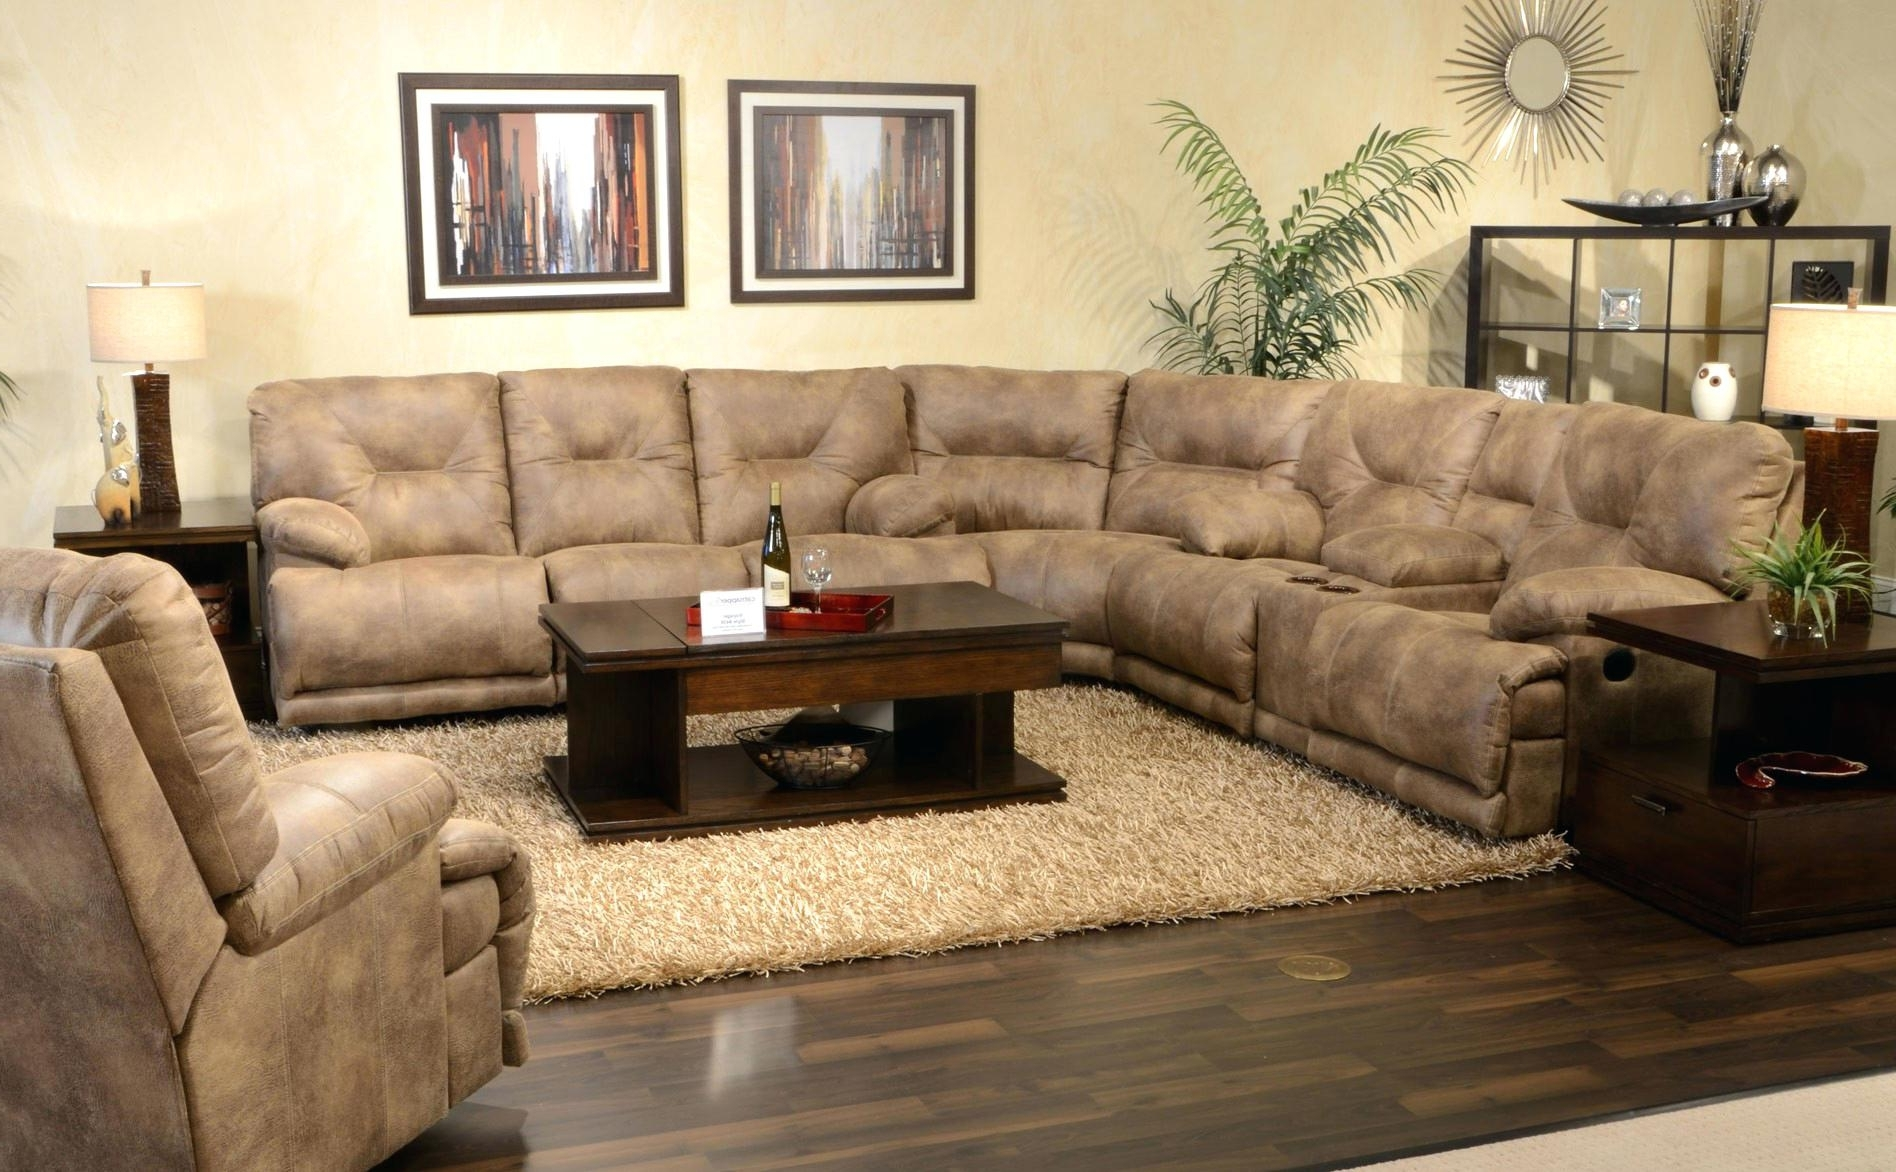 Sectional Sofa With Recliners Recliner Repair Parts – Bikas Throughout Most Recently Released Valdosta Ga Sectional Sofas (View 17 of 20)